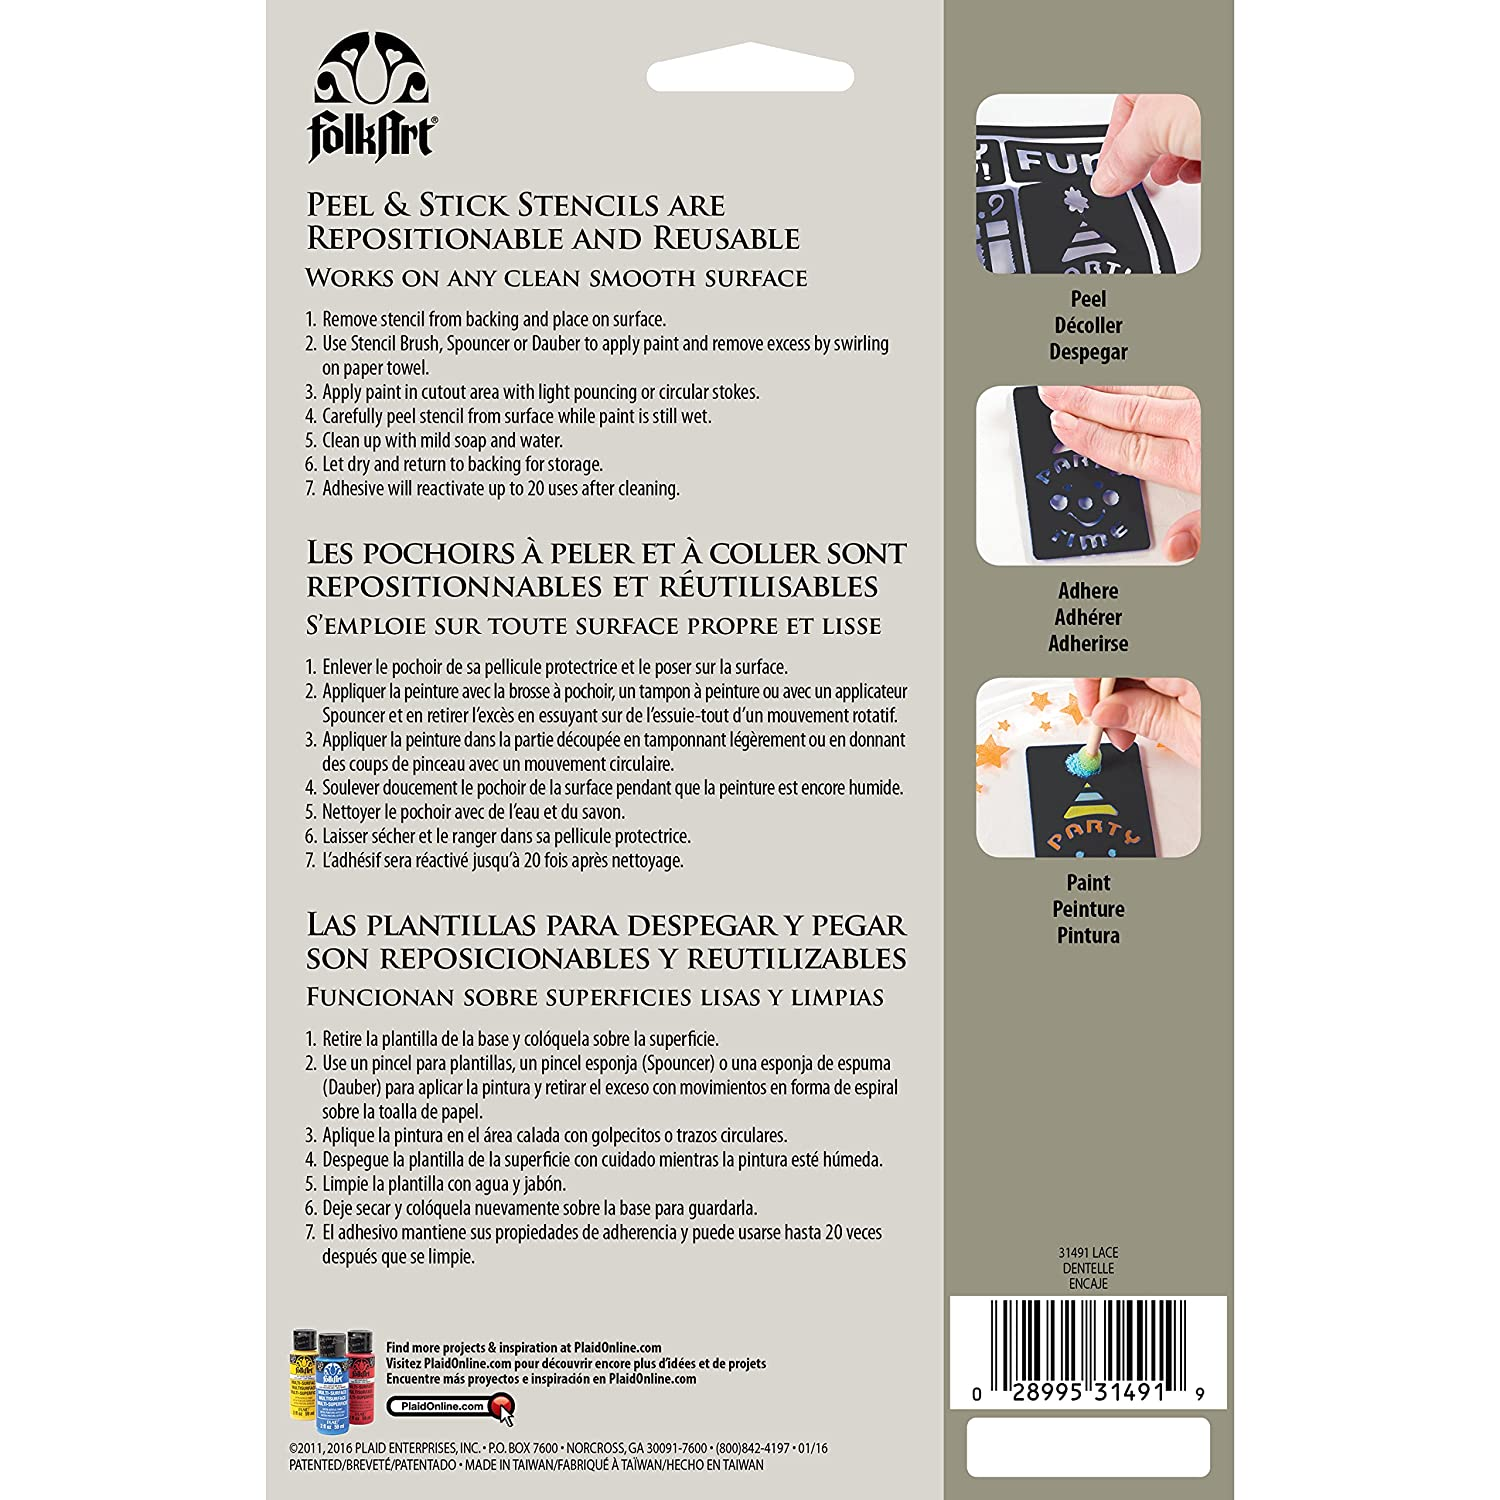 FolkArt Painting Stencil, 5.875 by 8.25-Inch, 31489 Folkloric